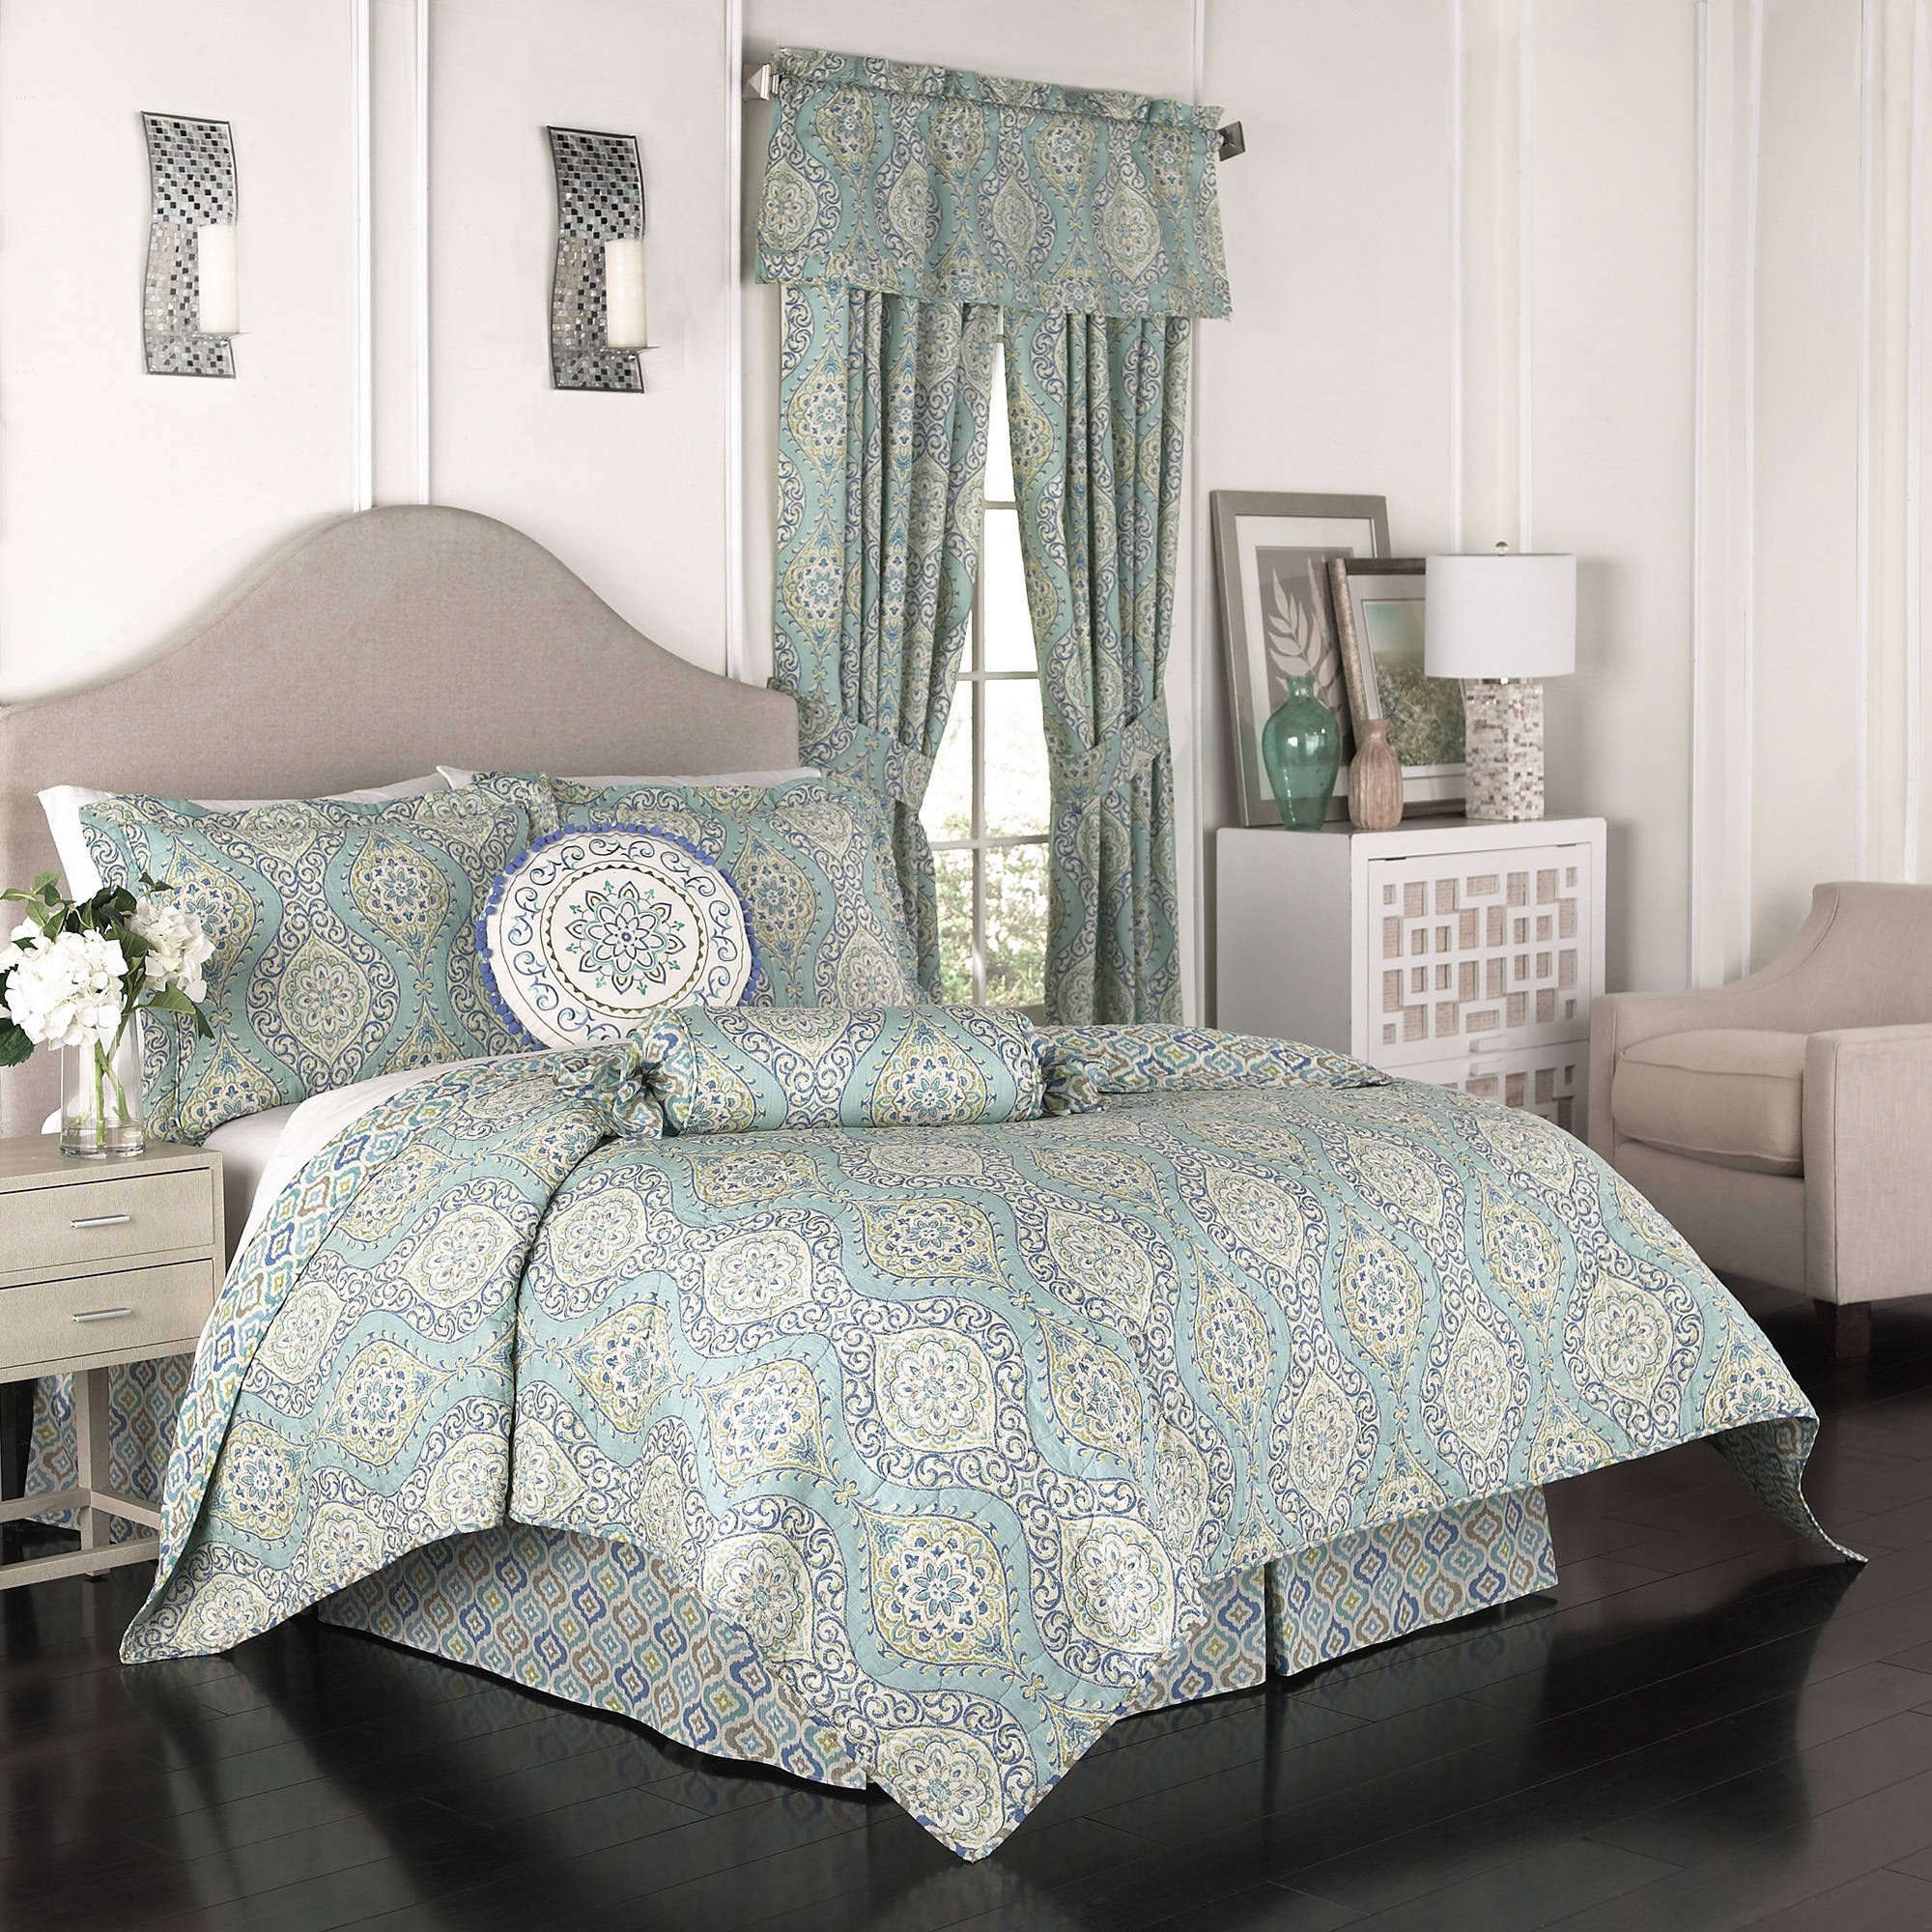 Waverly Moonlight Medallion 4-Piece Quilt Set